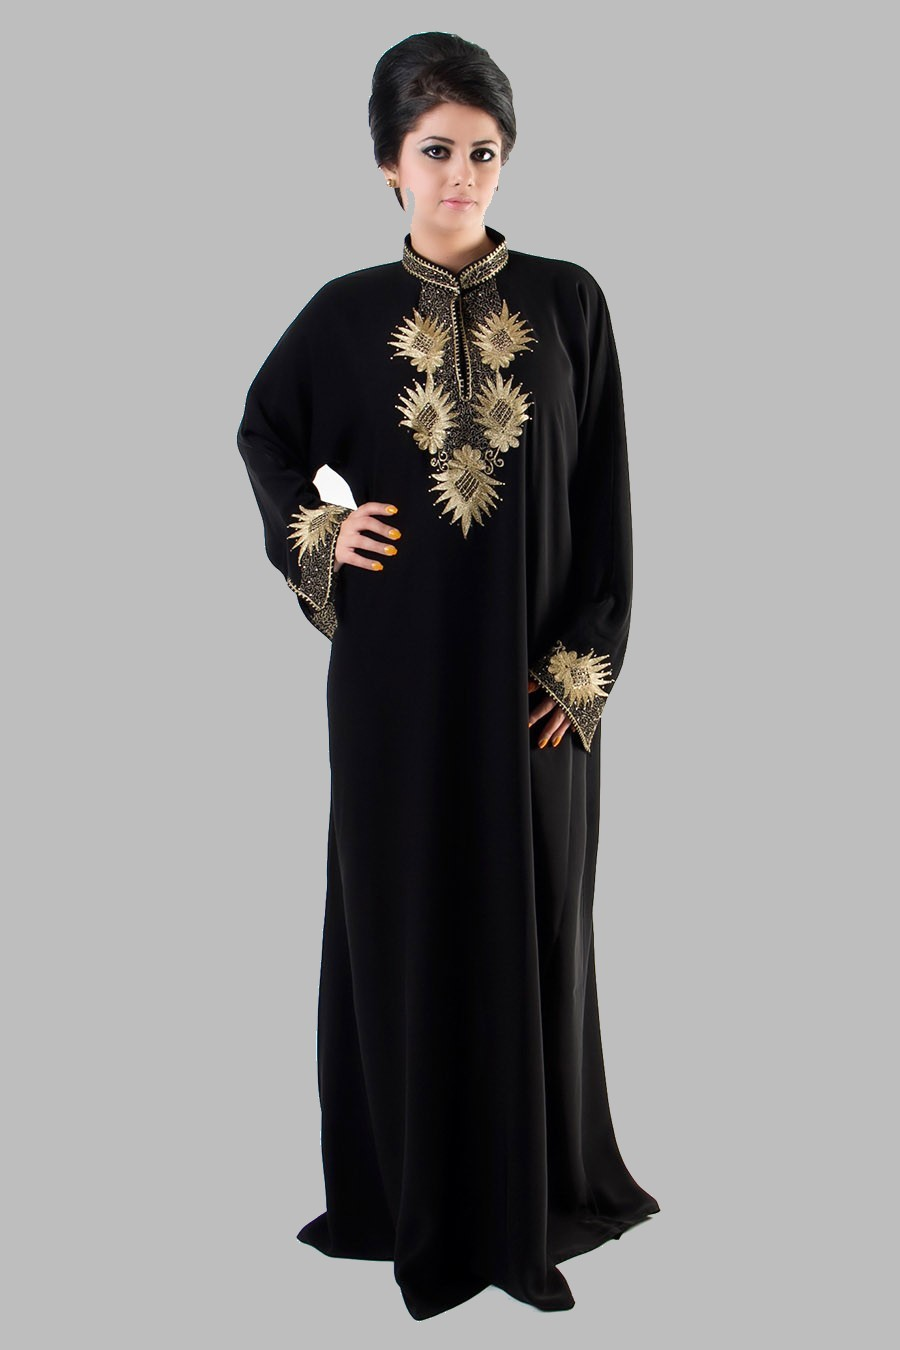 Embroidered Abaya Designs 2013 Islamic Abaya Dress Fashion 2013 14